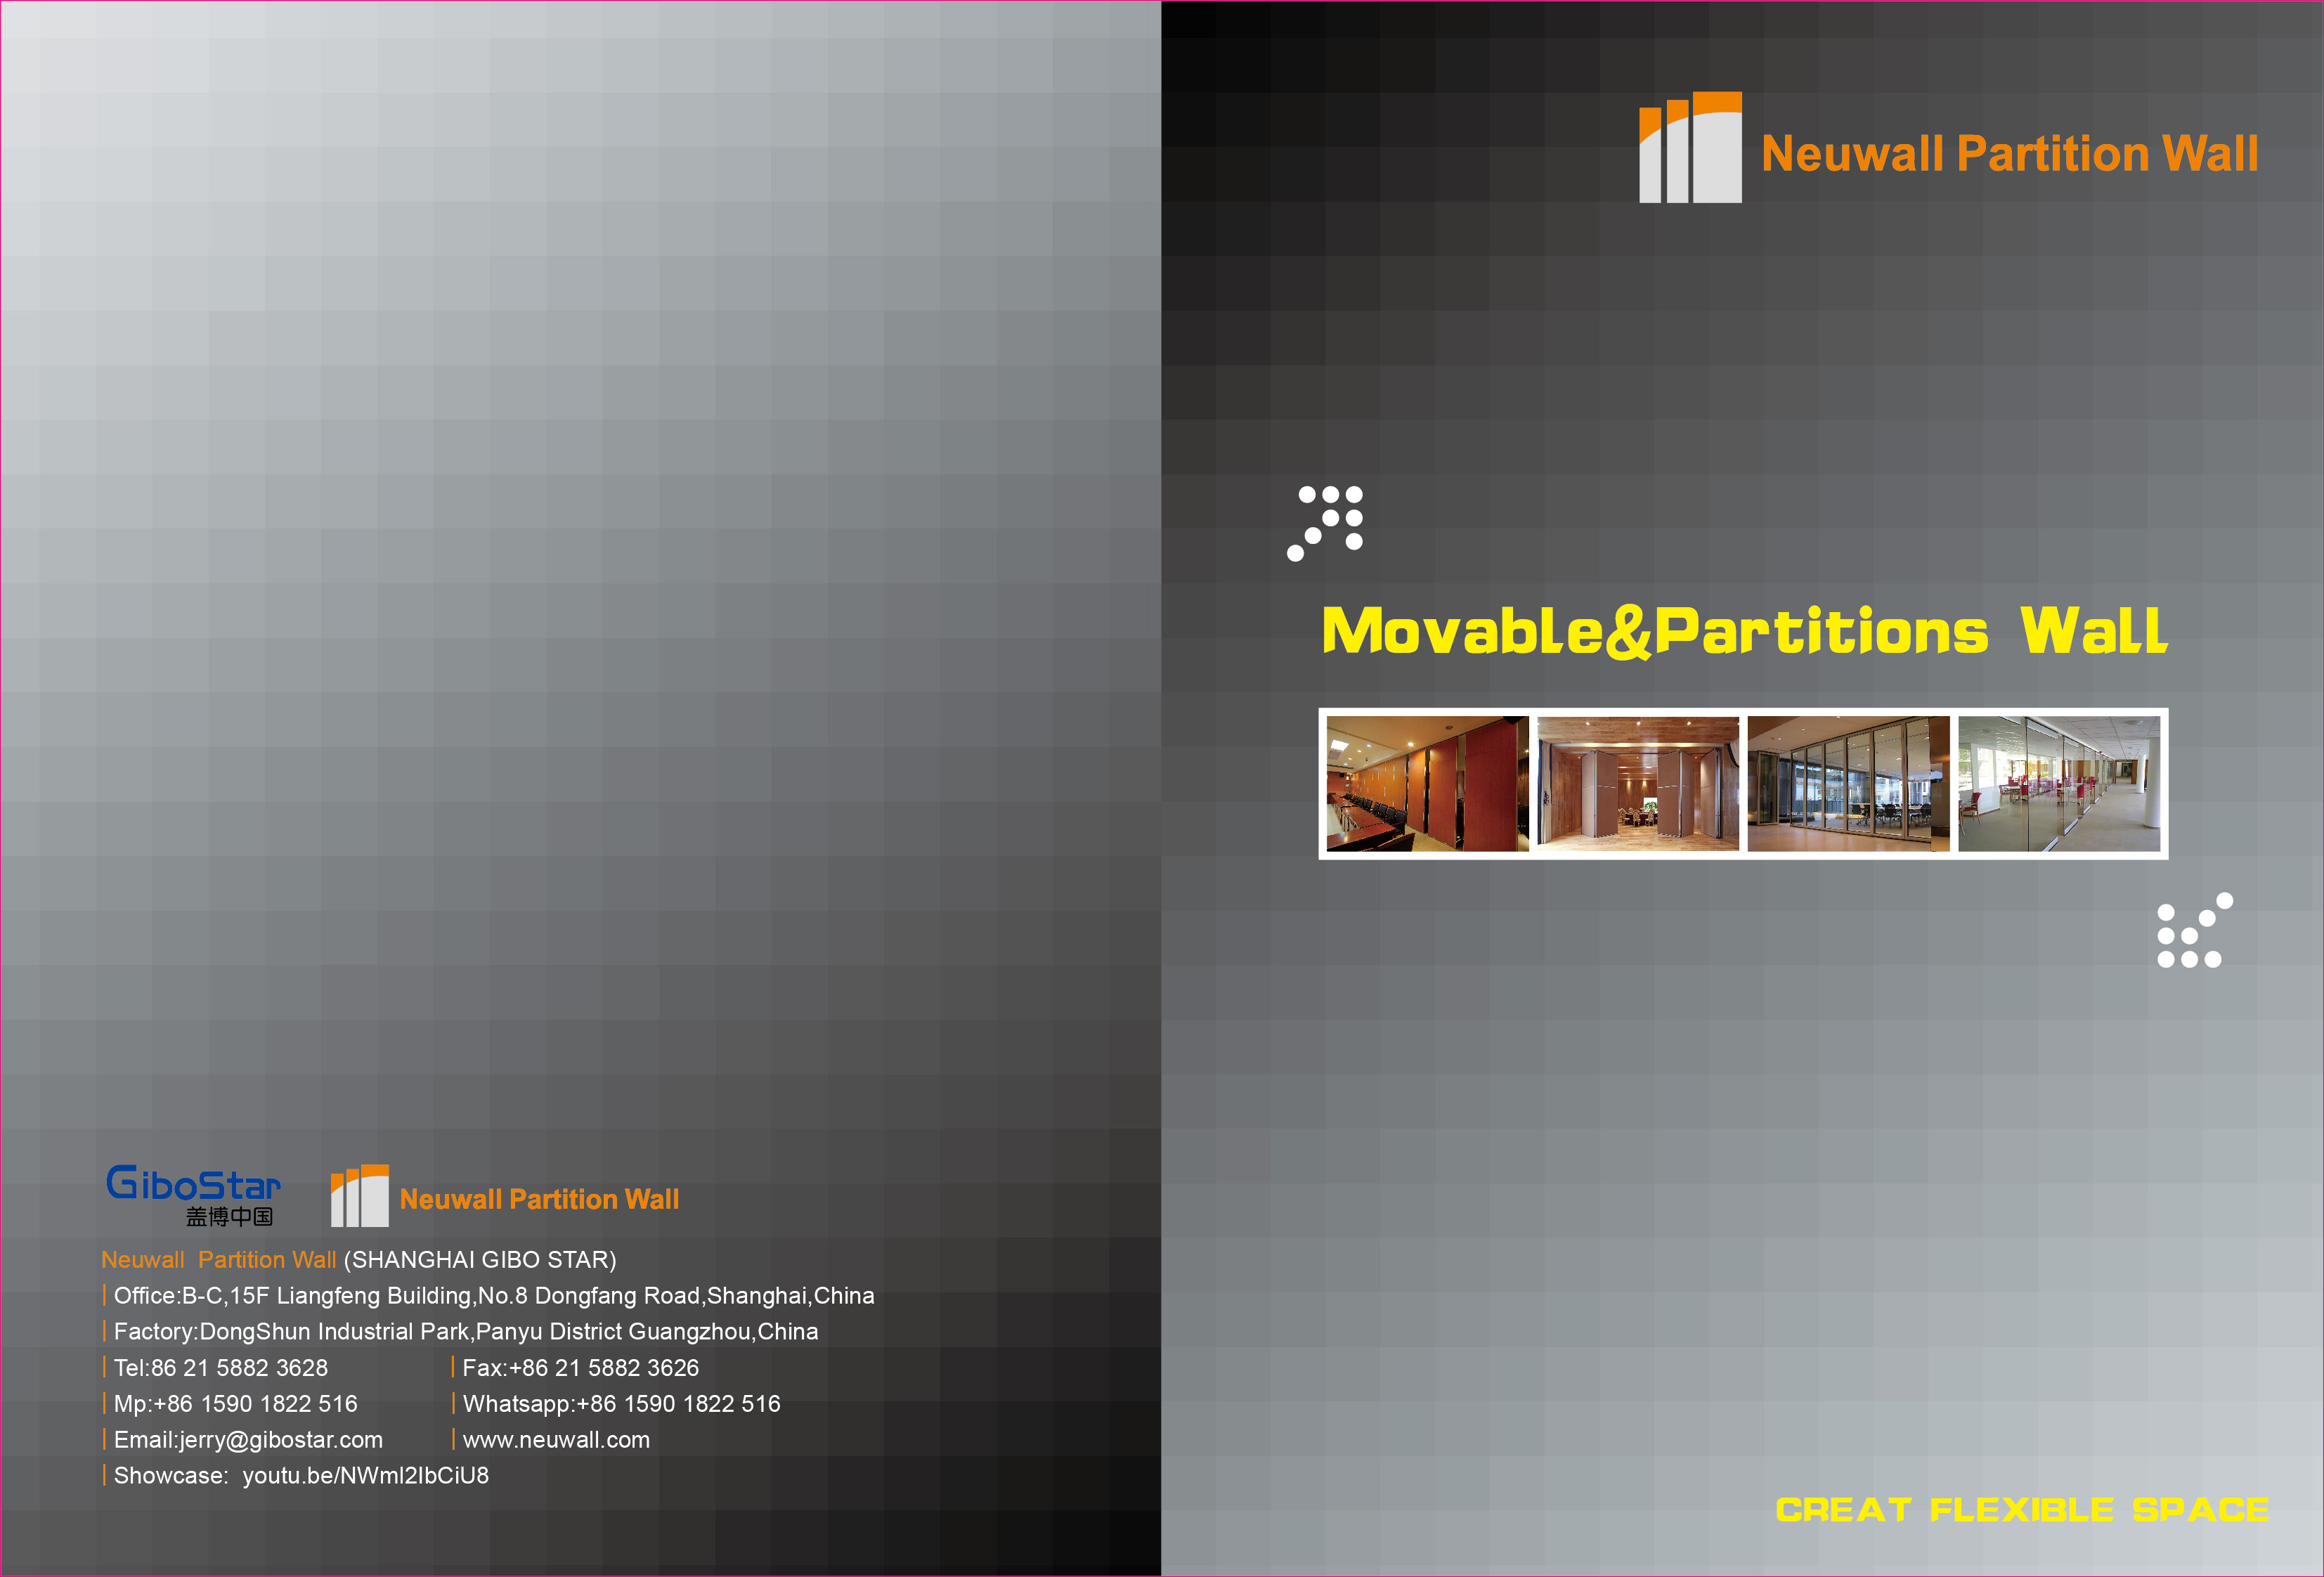 Operable Partition Wall Brochure_Neuwall Partition Wall